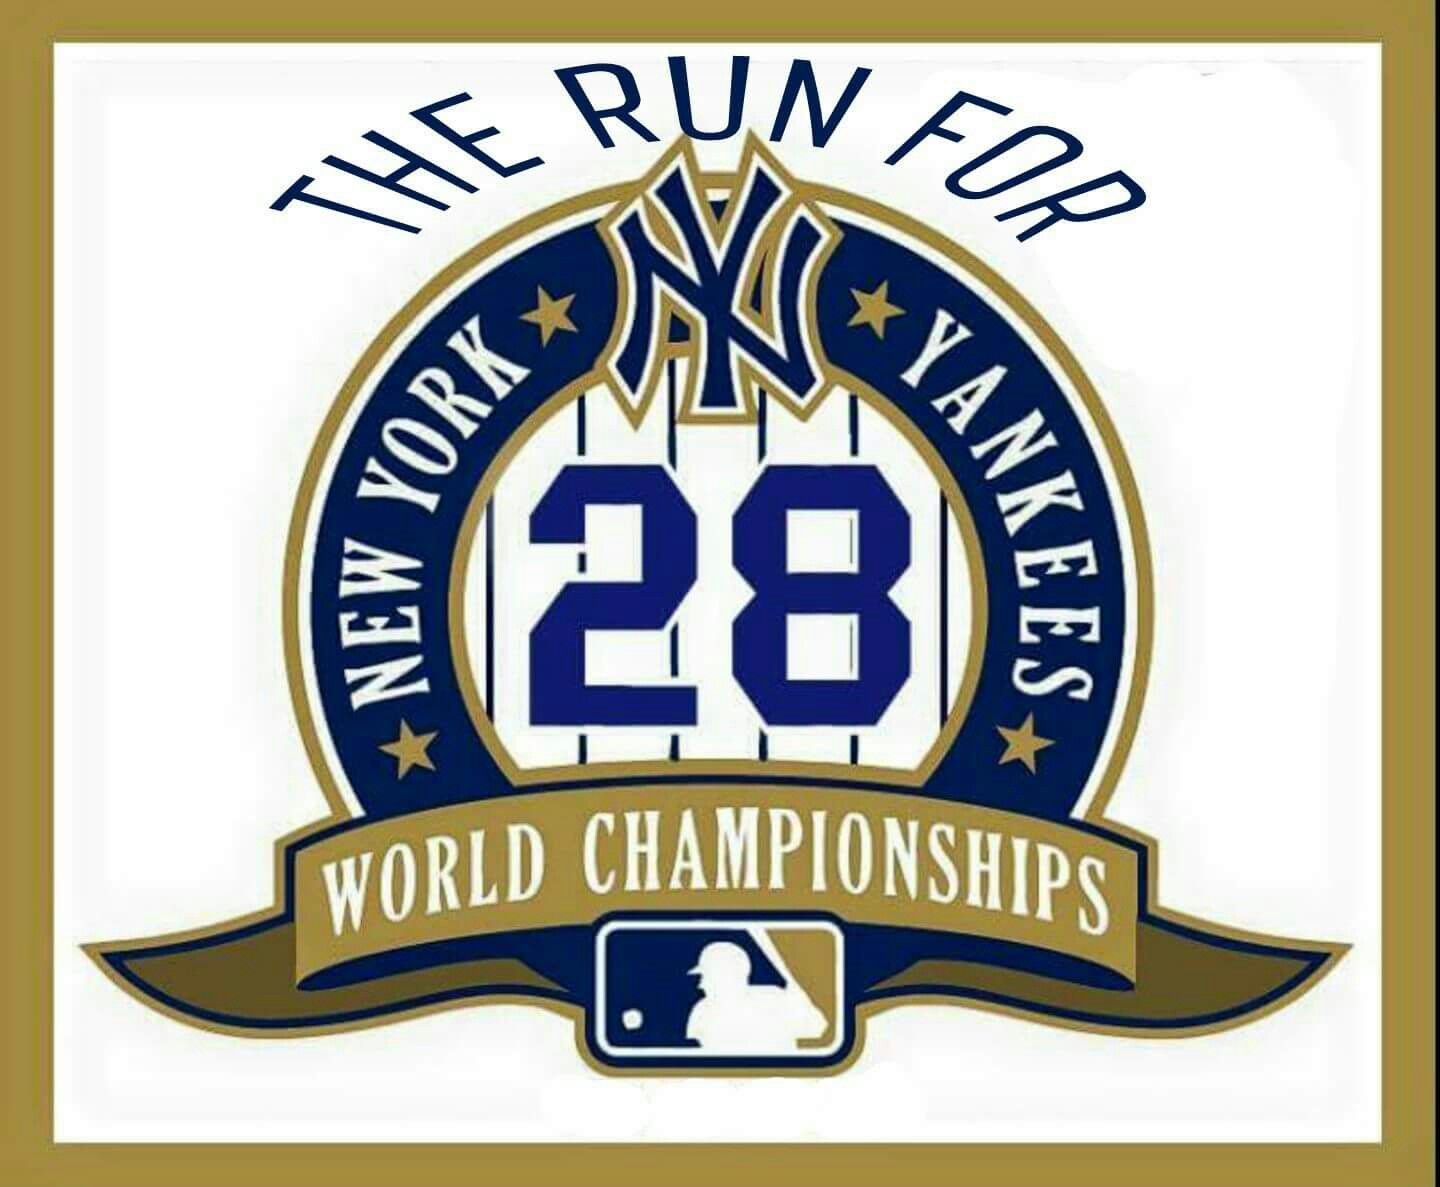 Pin By Christine Falco On New York Yankees New York Yankees Logo New York Yankees Yankees Logo